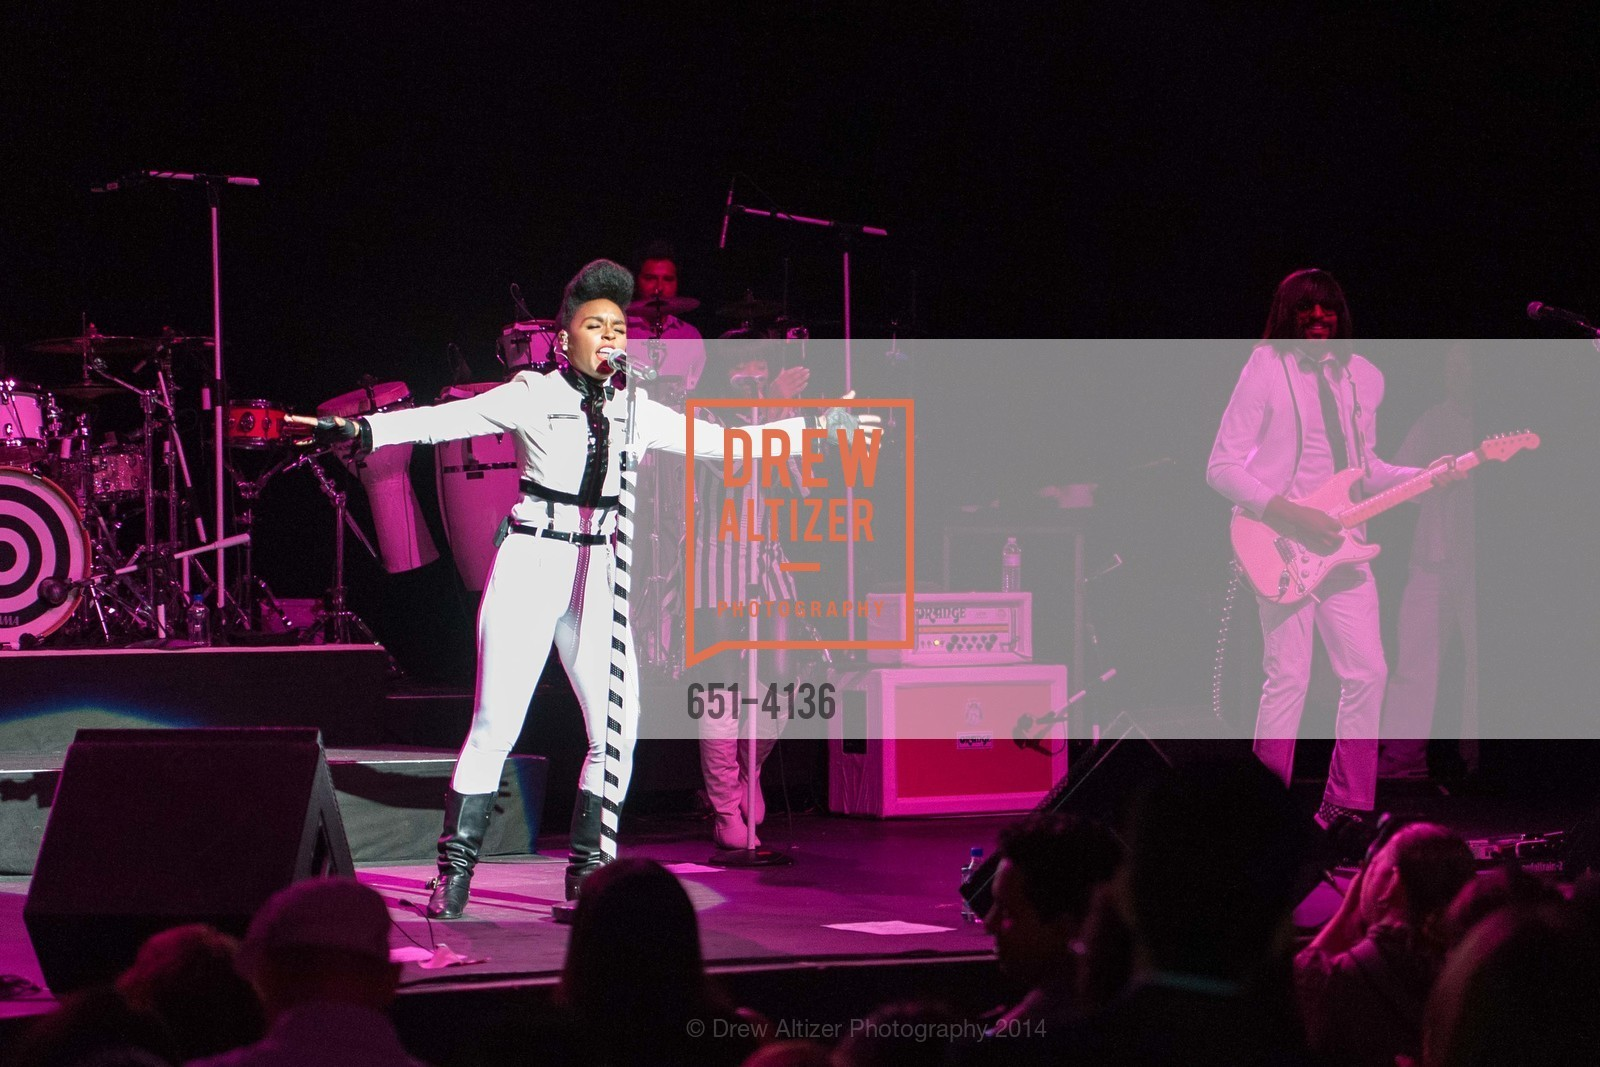 Performance By Janelle Monae, Photo #651-4136